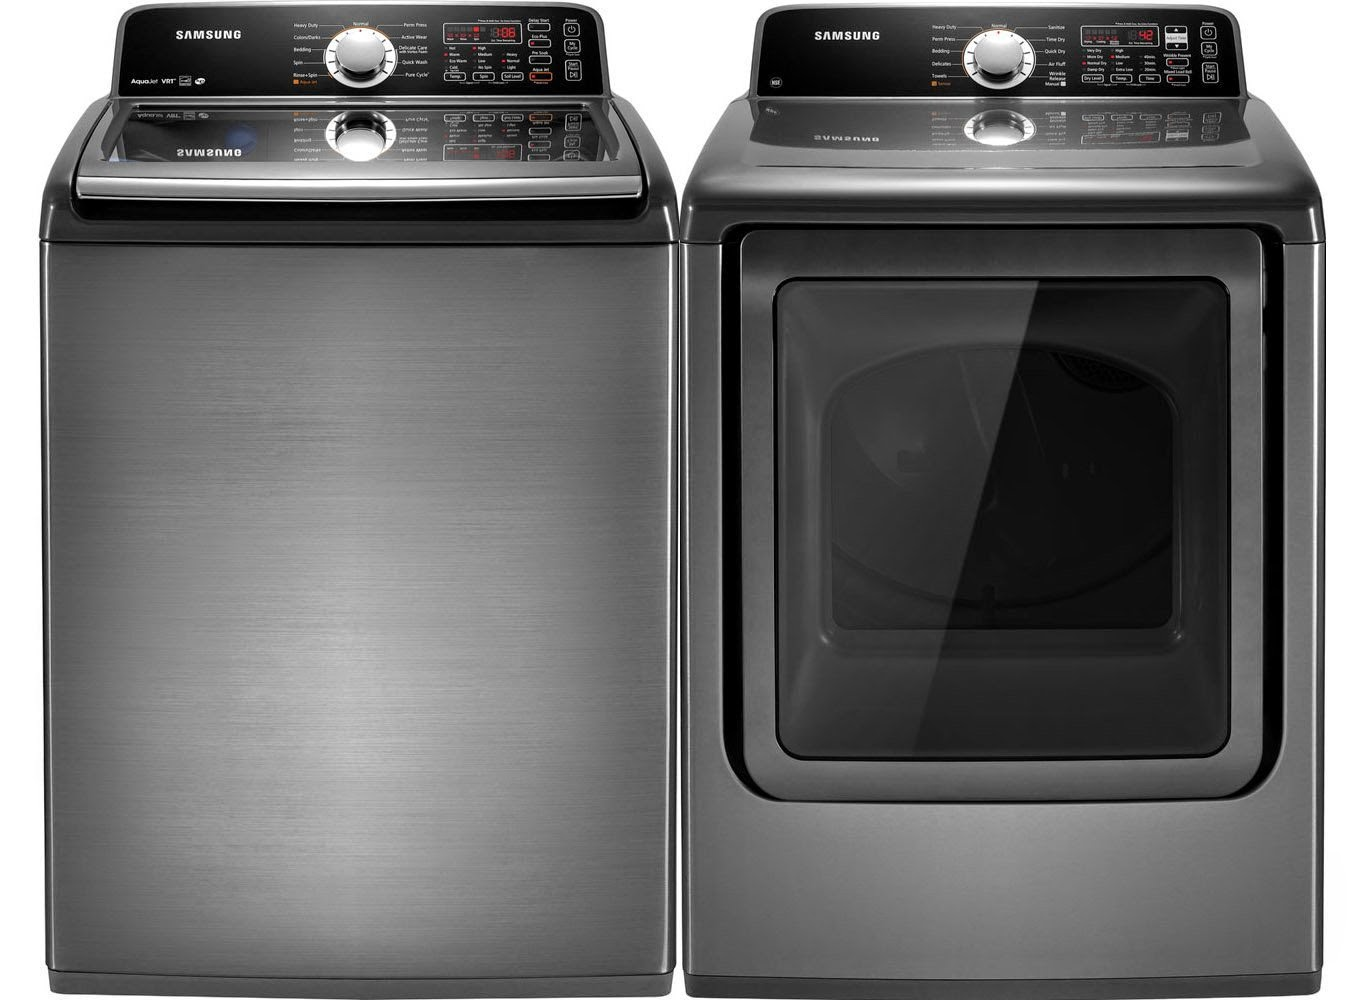 home depot washing machine dryer with Washer Dryer Sale Blogspot on 41929 additionally Wasruimtes as well Haier Hlc1700axw  pact Laundry  bo Washerdryer White likewise Lg Appliances Wm3050cw 46 Cu Ft High Efficiency Front Load Energy Star Washer g1547979 in addition indoorventandlintcollector.